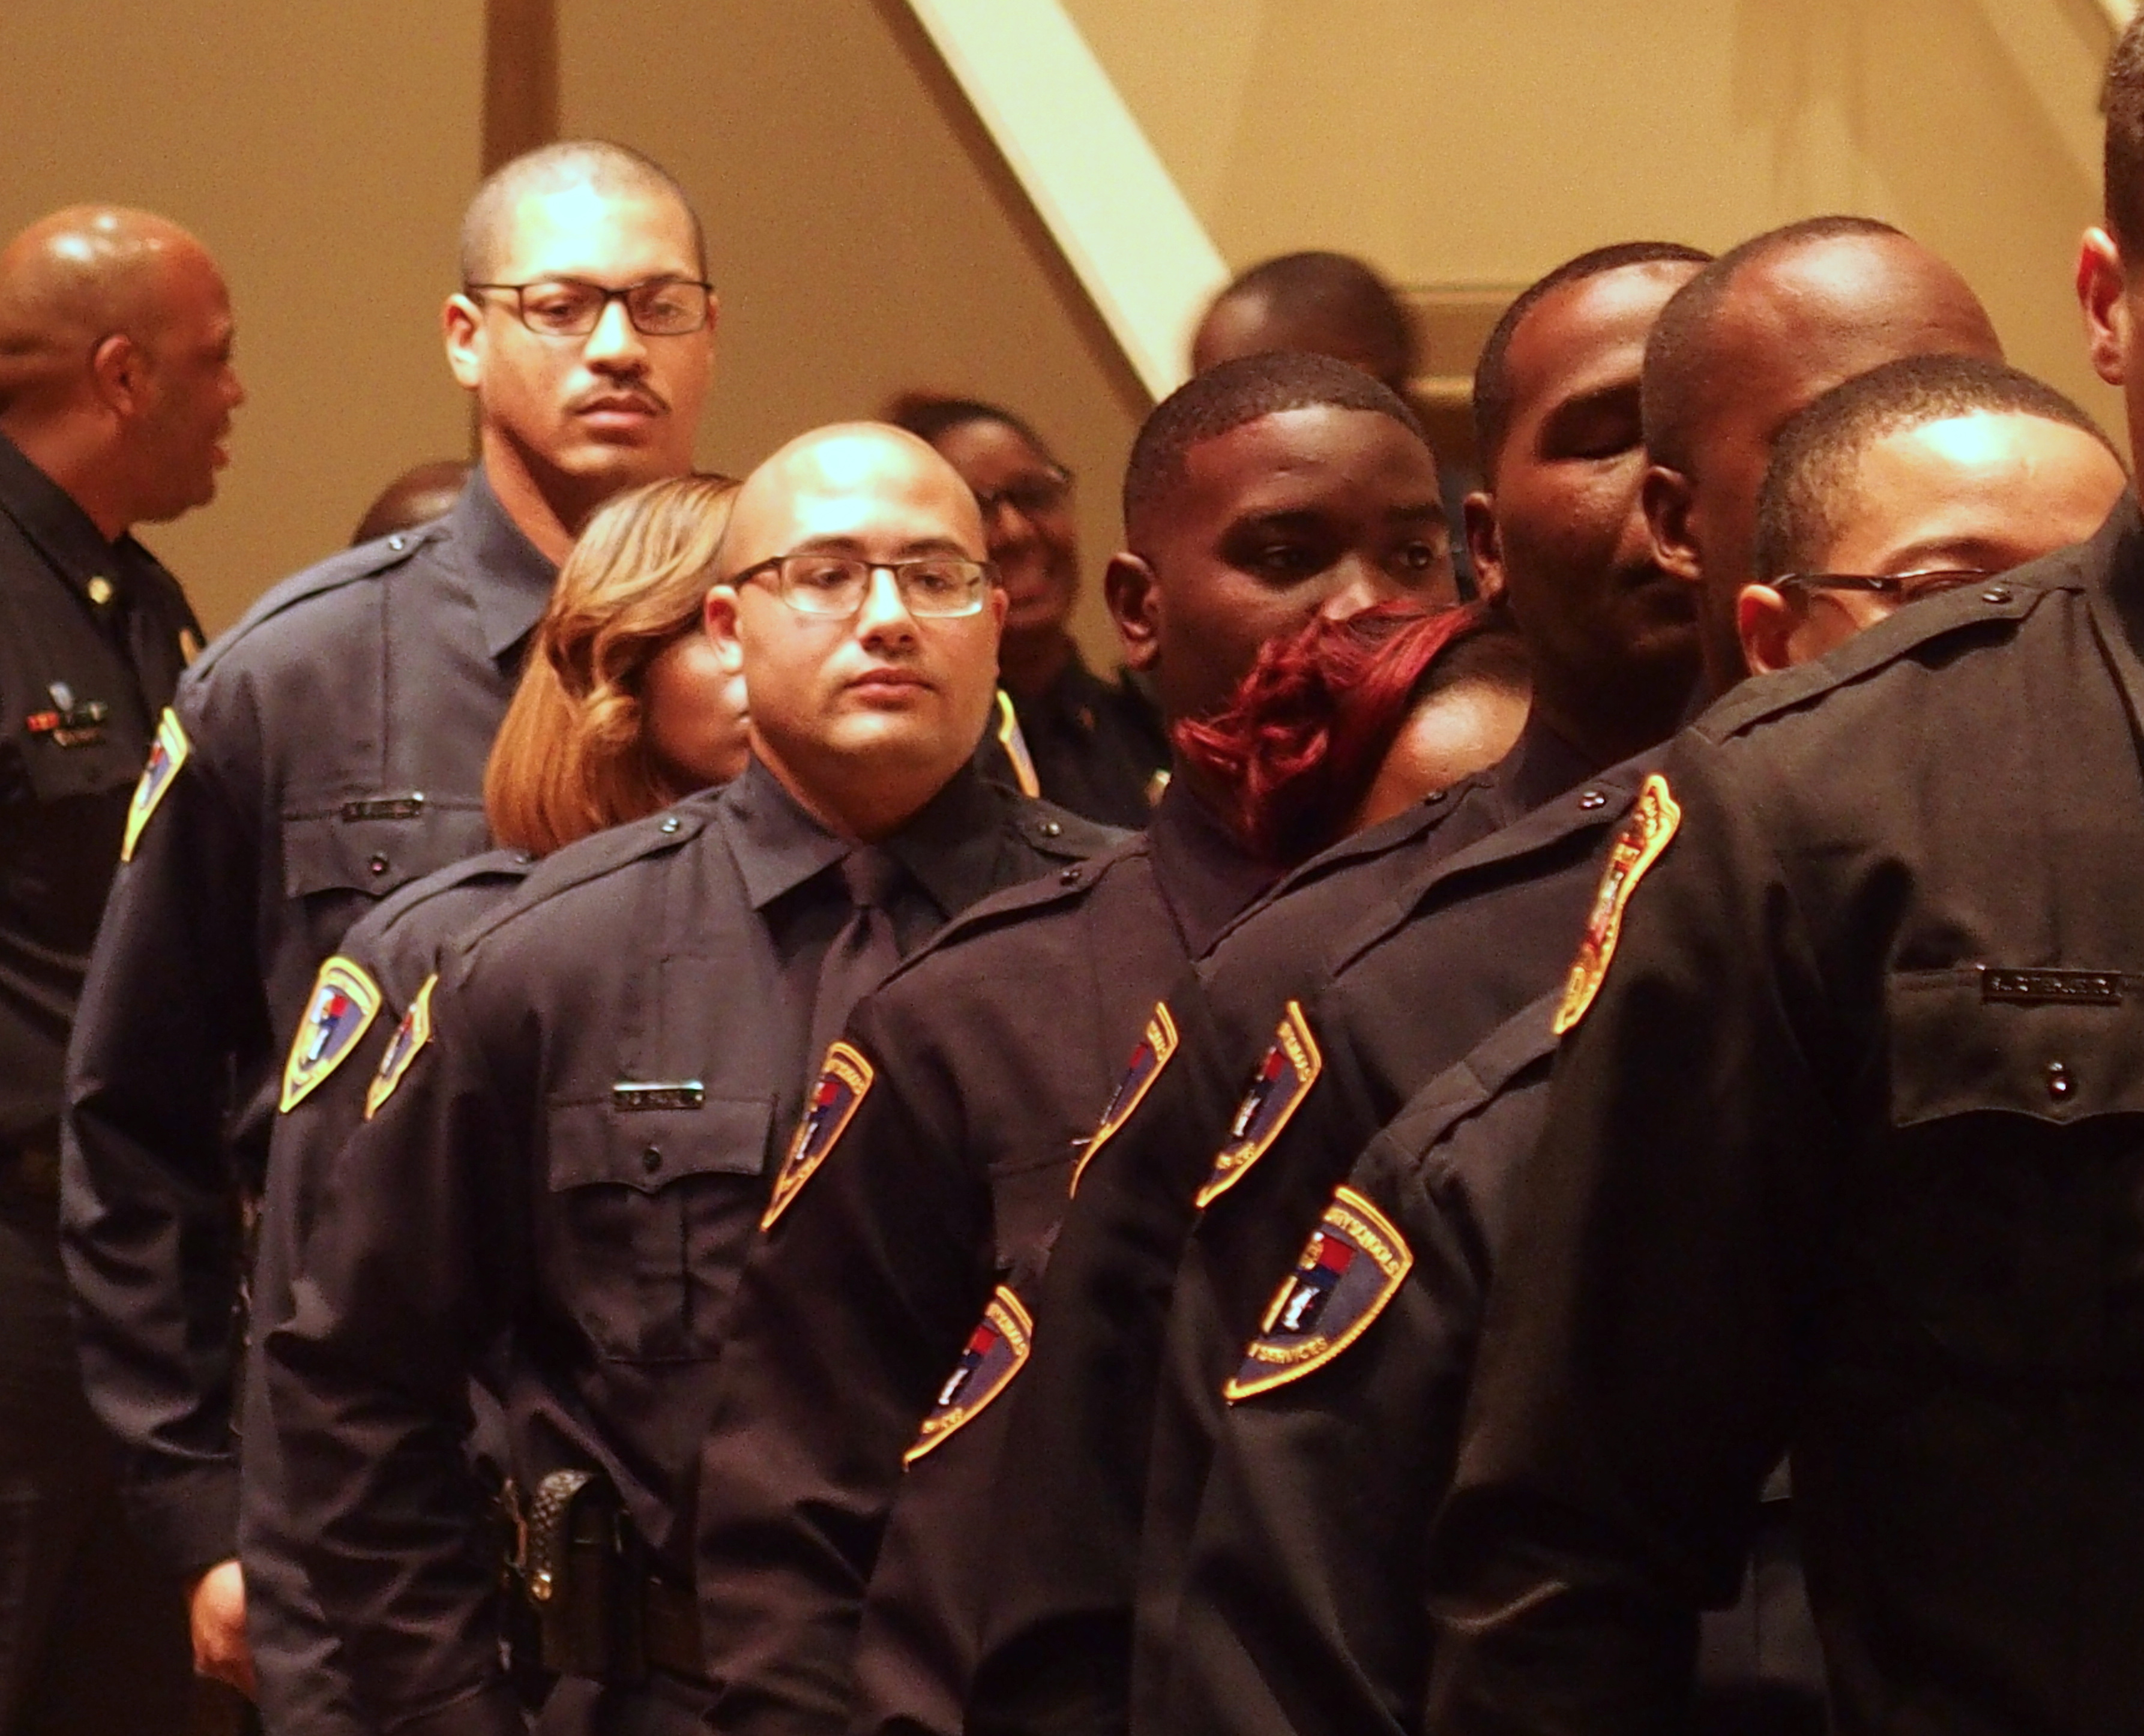 School resource officers complete training for Shelby County Schools in October 2018. Fewer than 20 of school resource officers are sheriff's deputies. The district employs the rest.